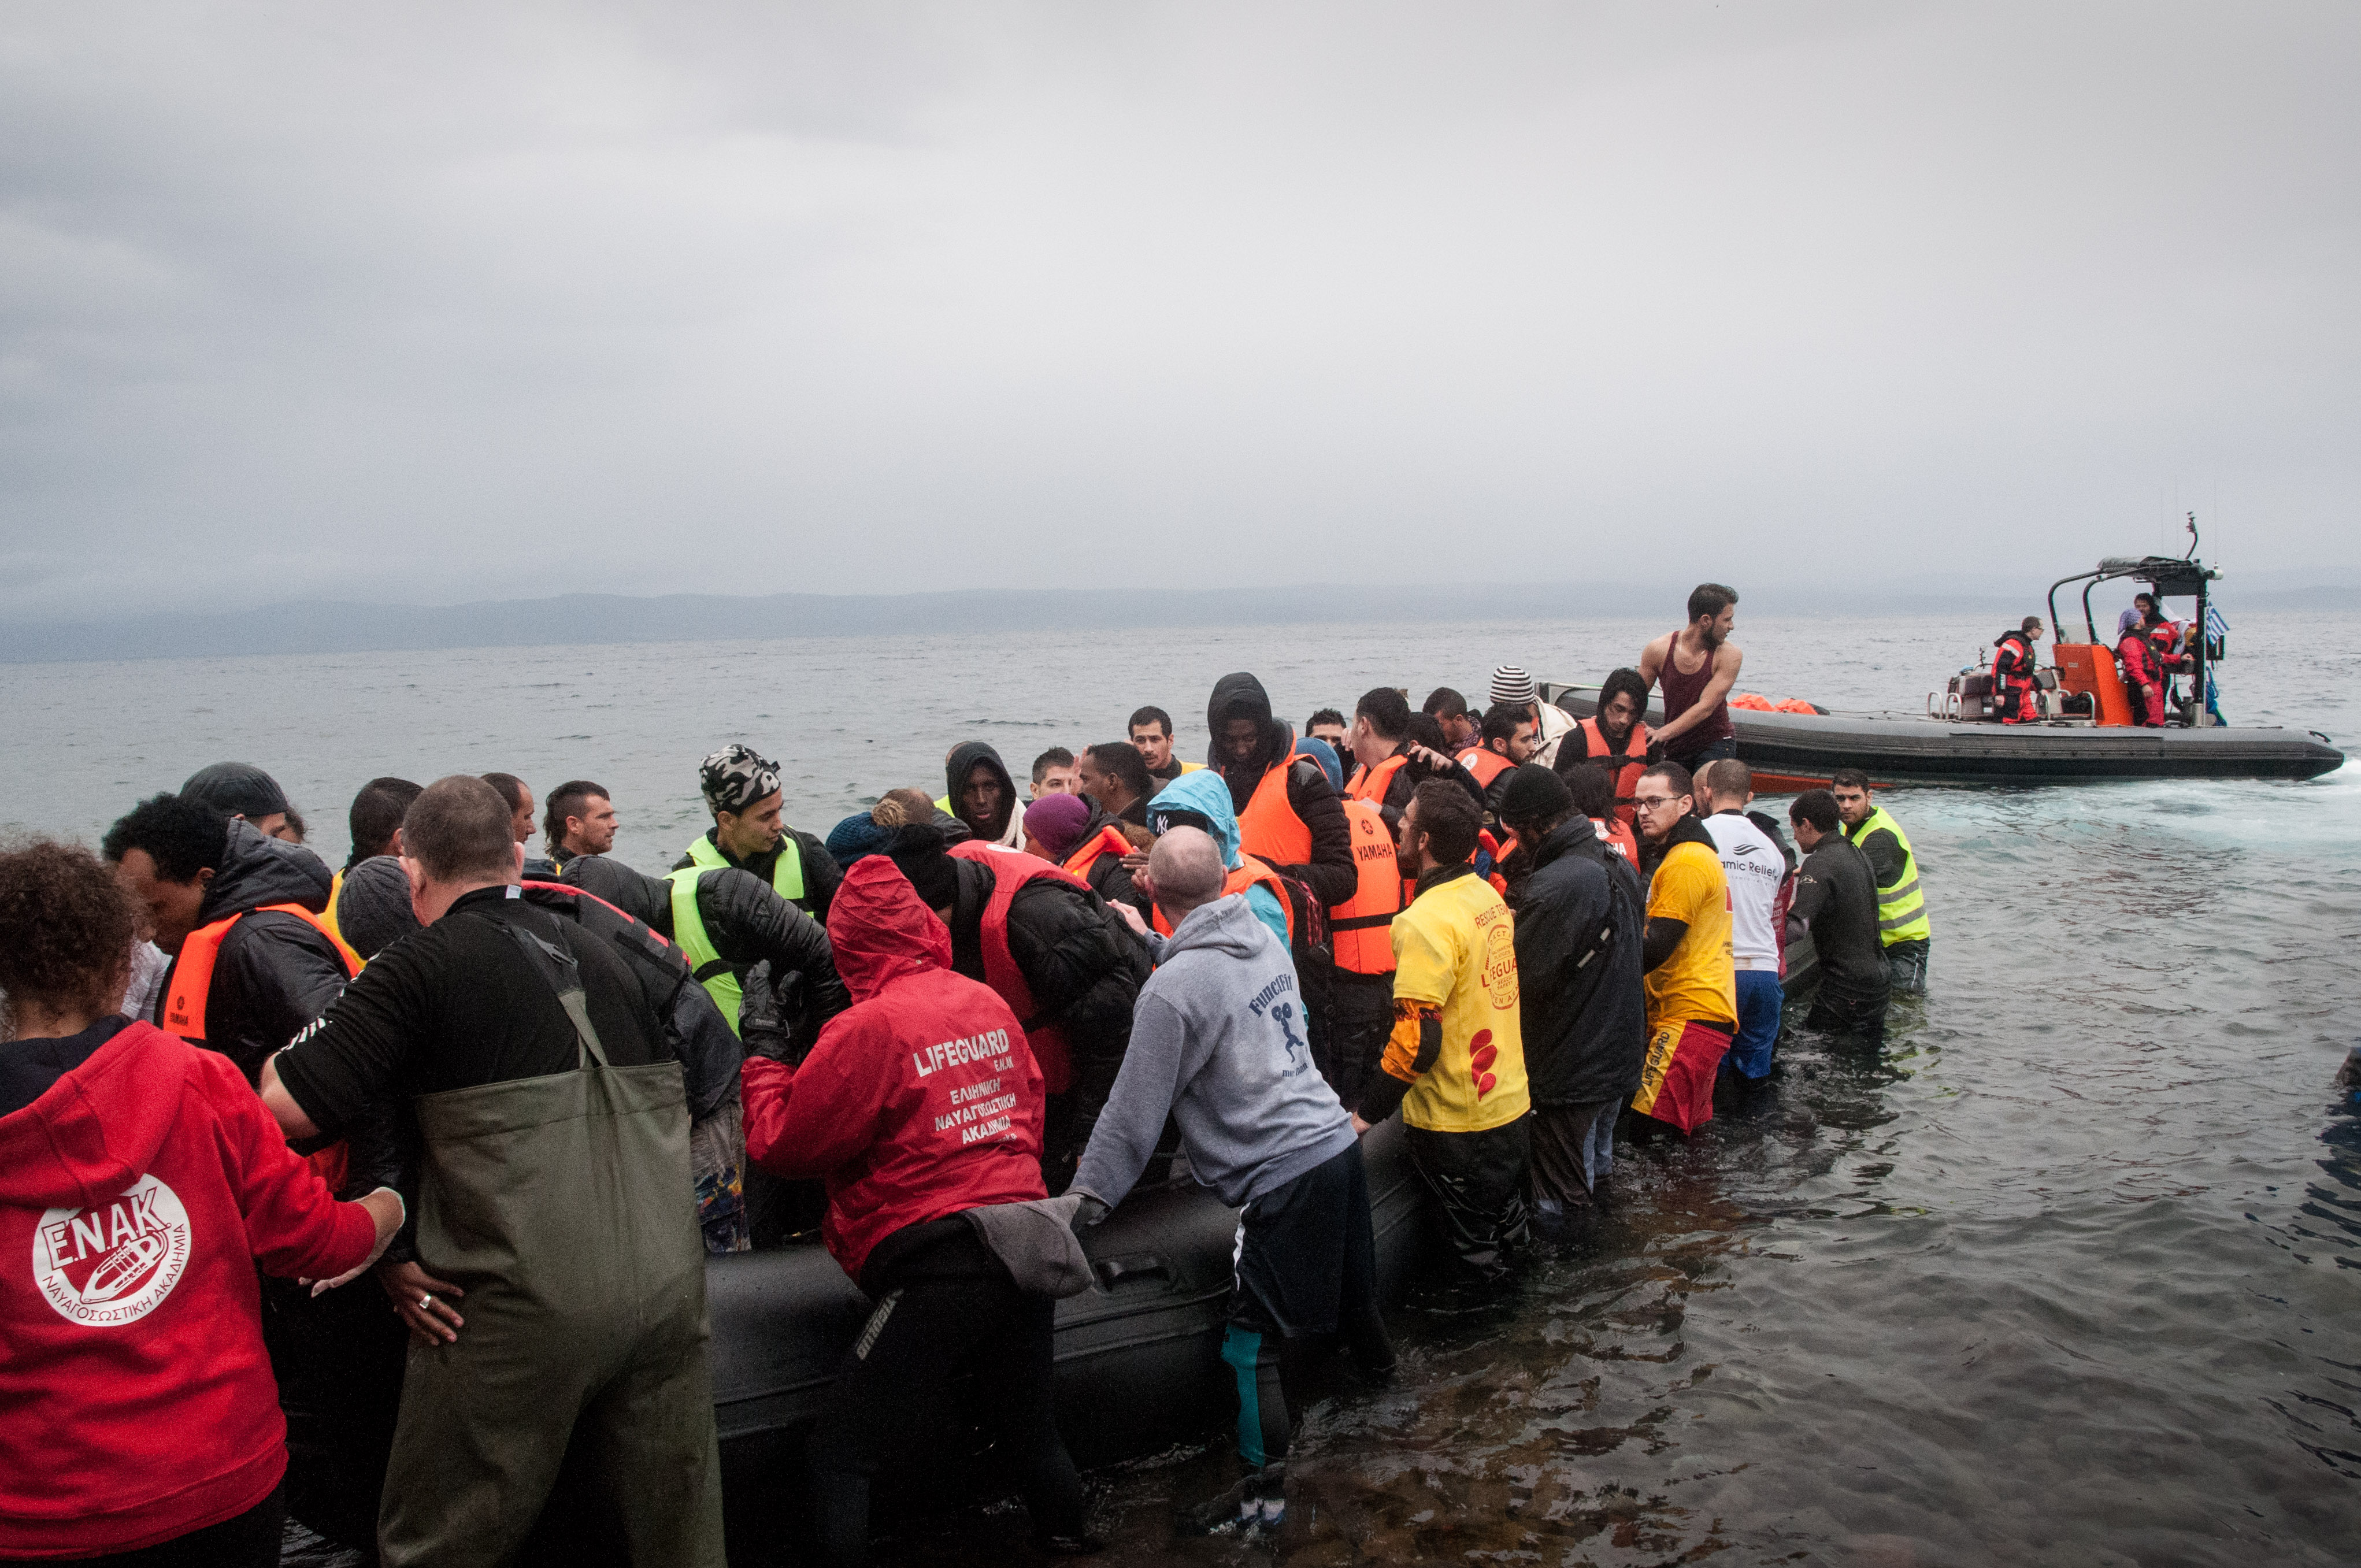 Refugees arriving by boat to Lesvos, Greece, from Turkey